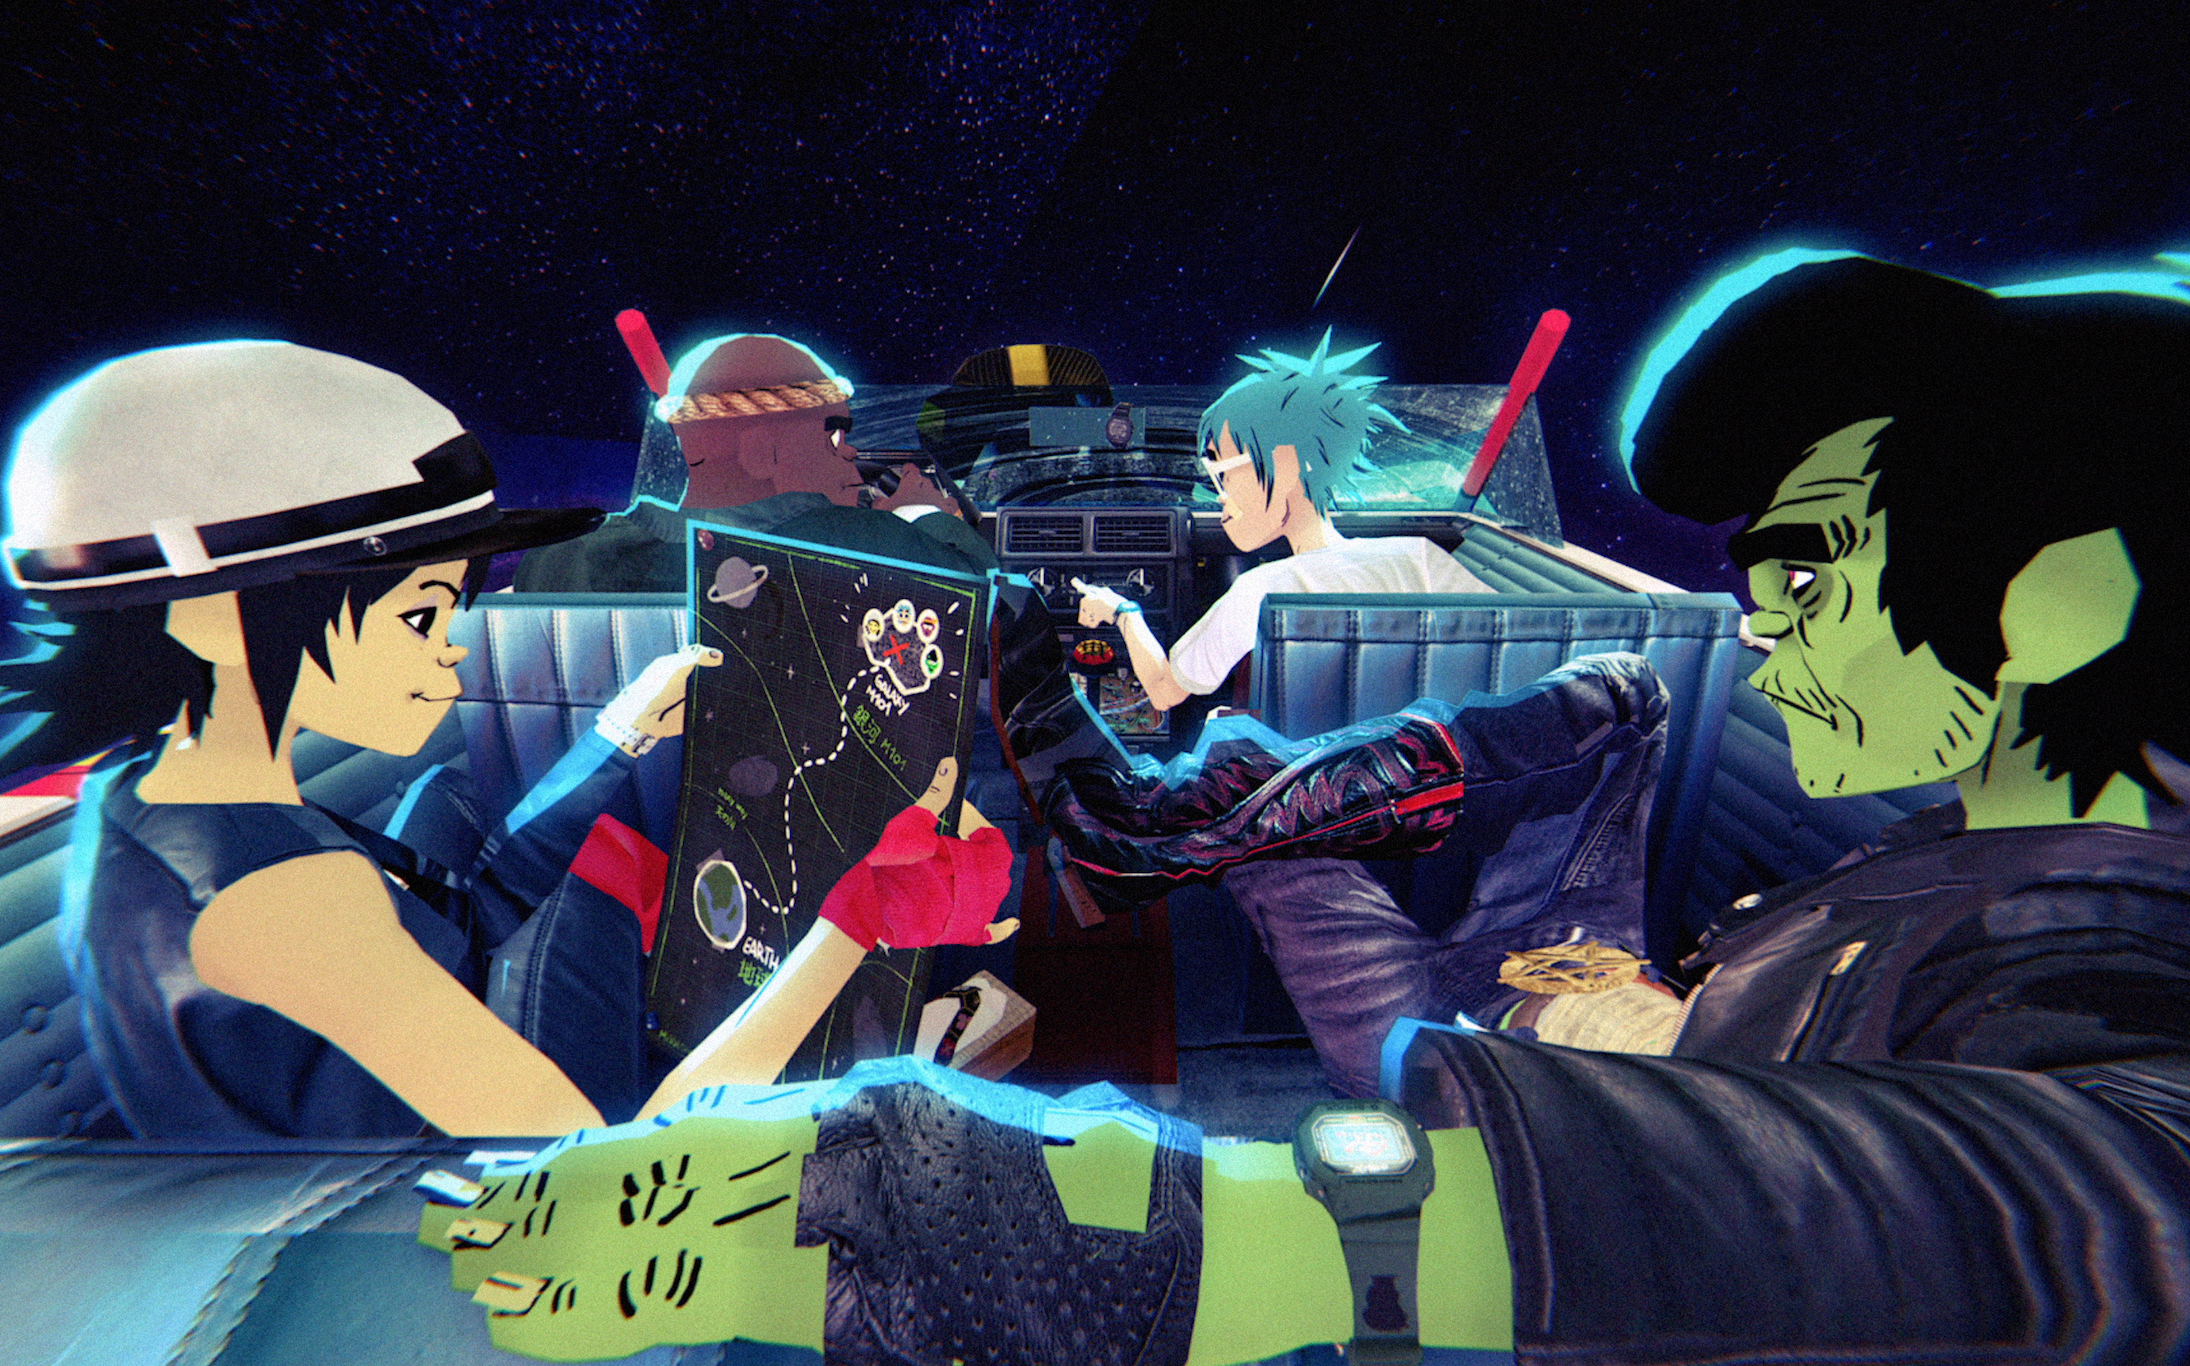 WATCH PART 2 OF GORILLAZ' MISSION IN SPACE